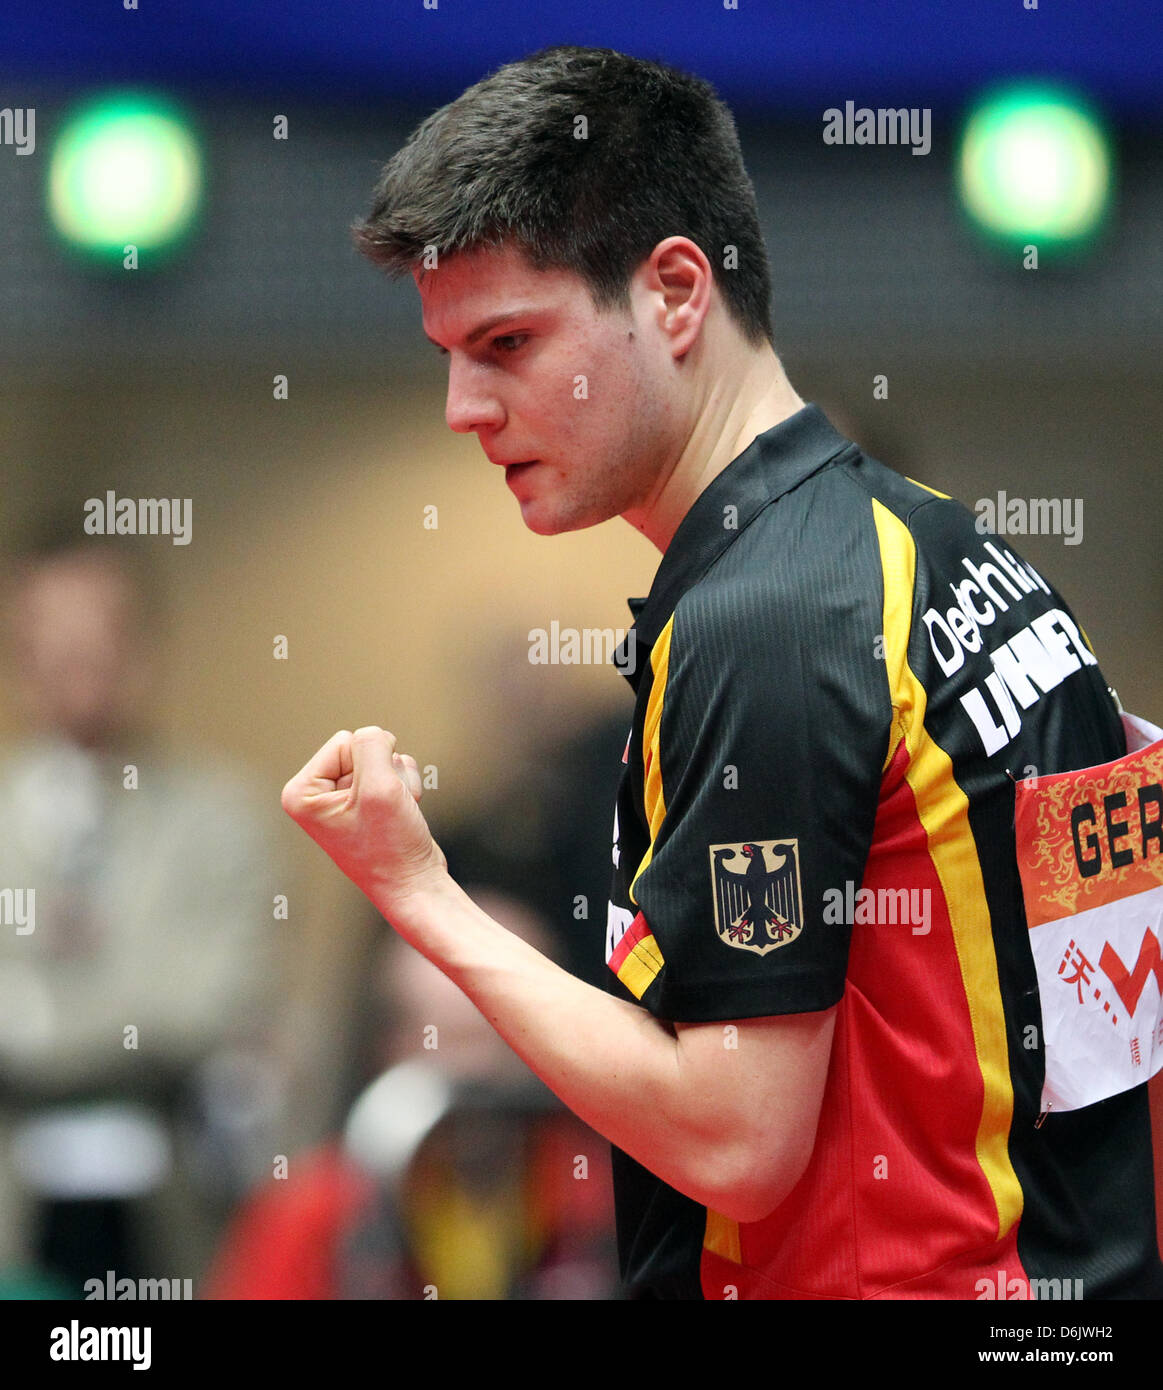 Germany's Dimitrij Ovtcharov celebrates his victory of the men's group B match against Freitas from Portugal - Stock Image